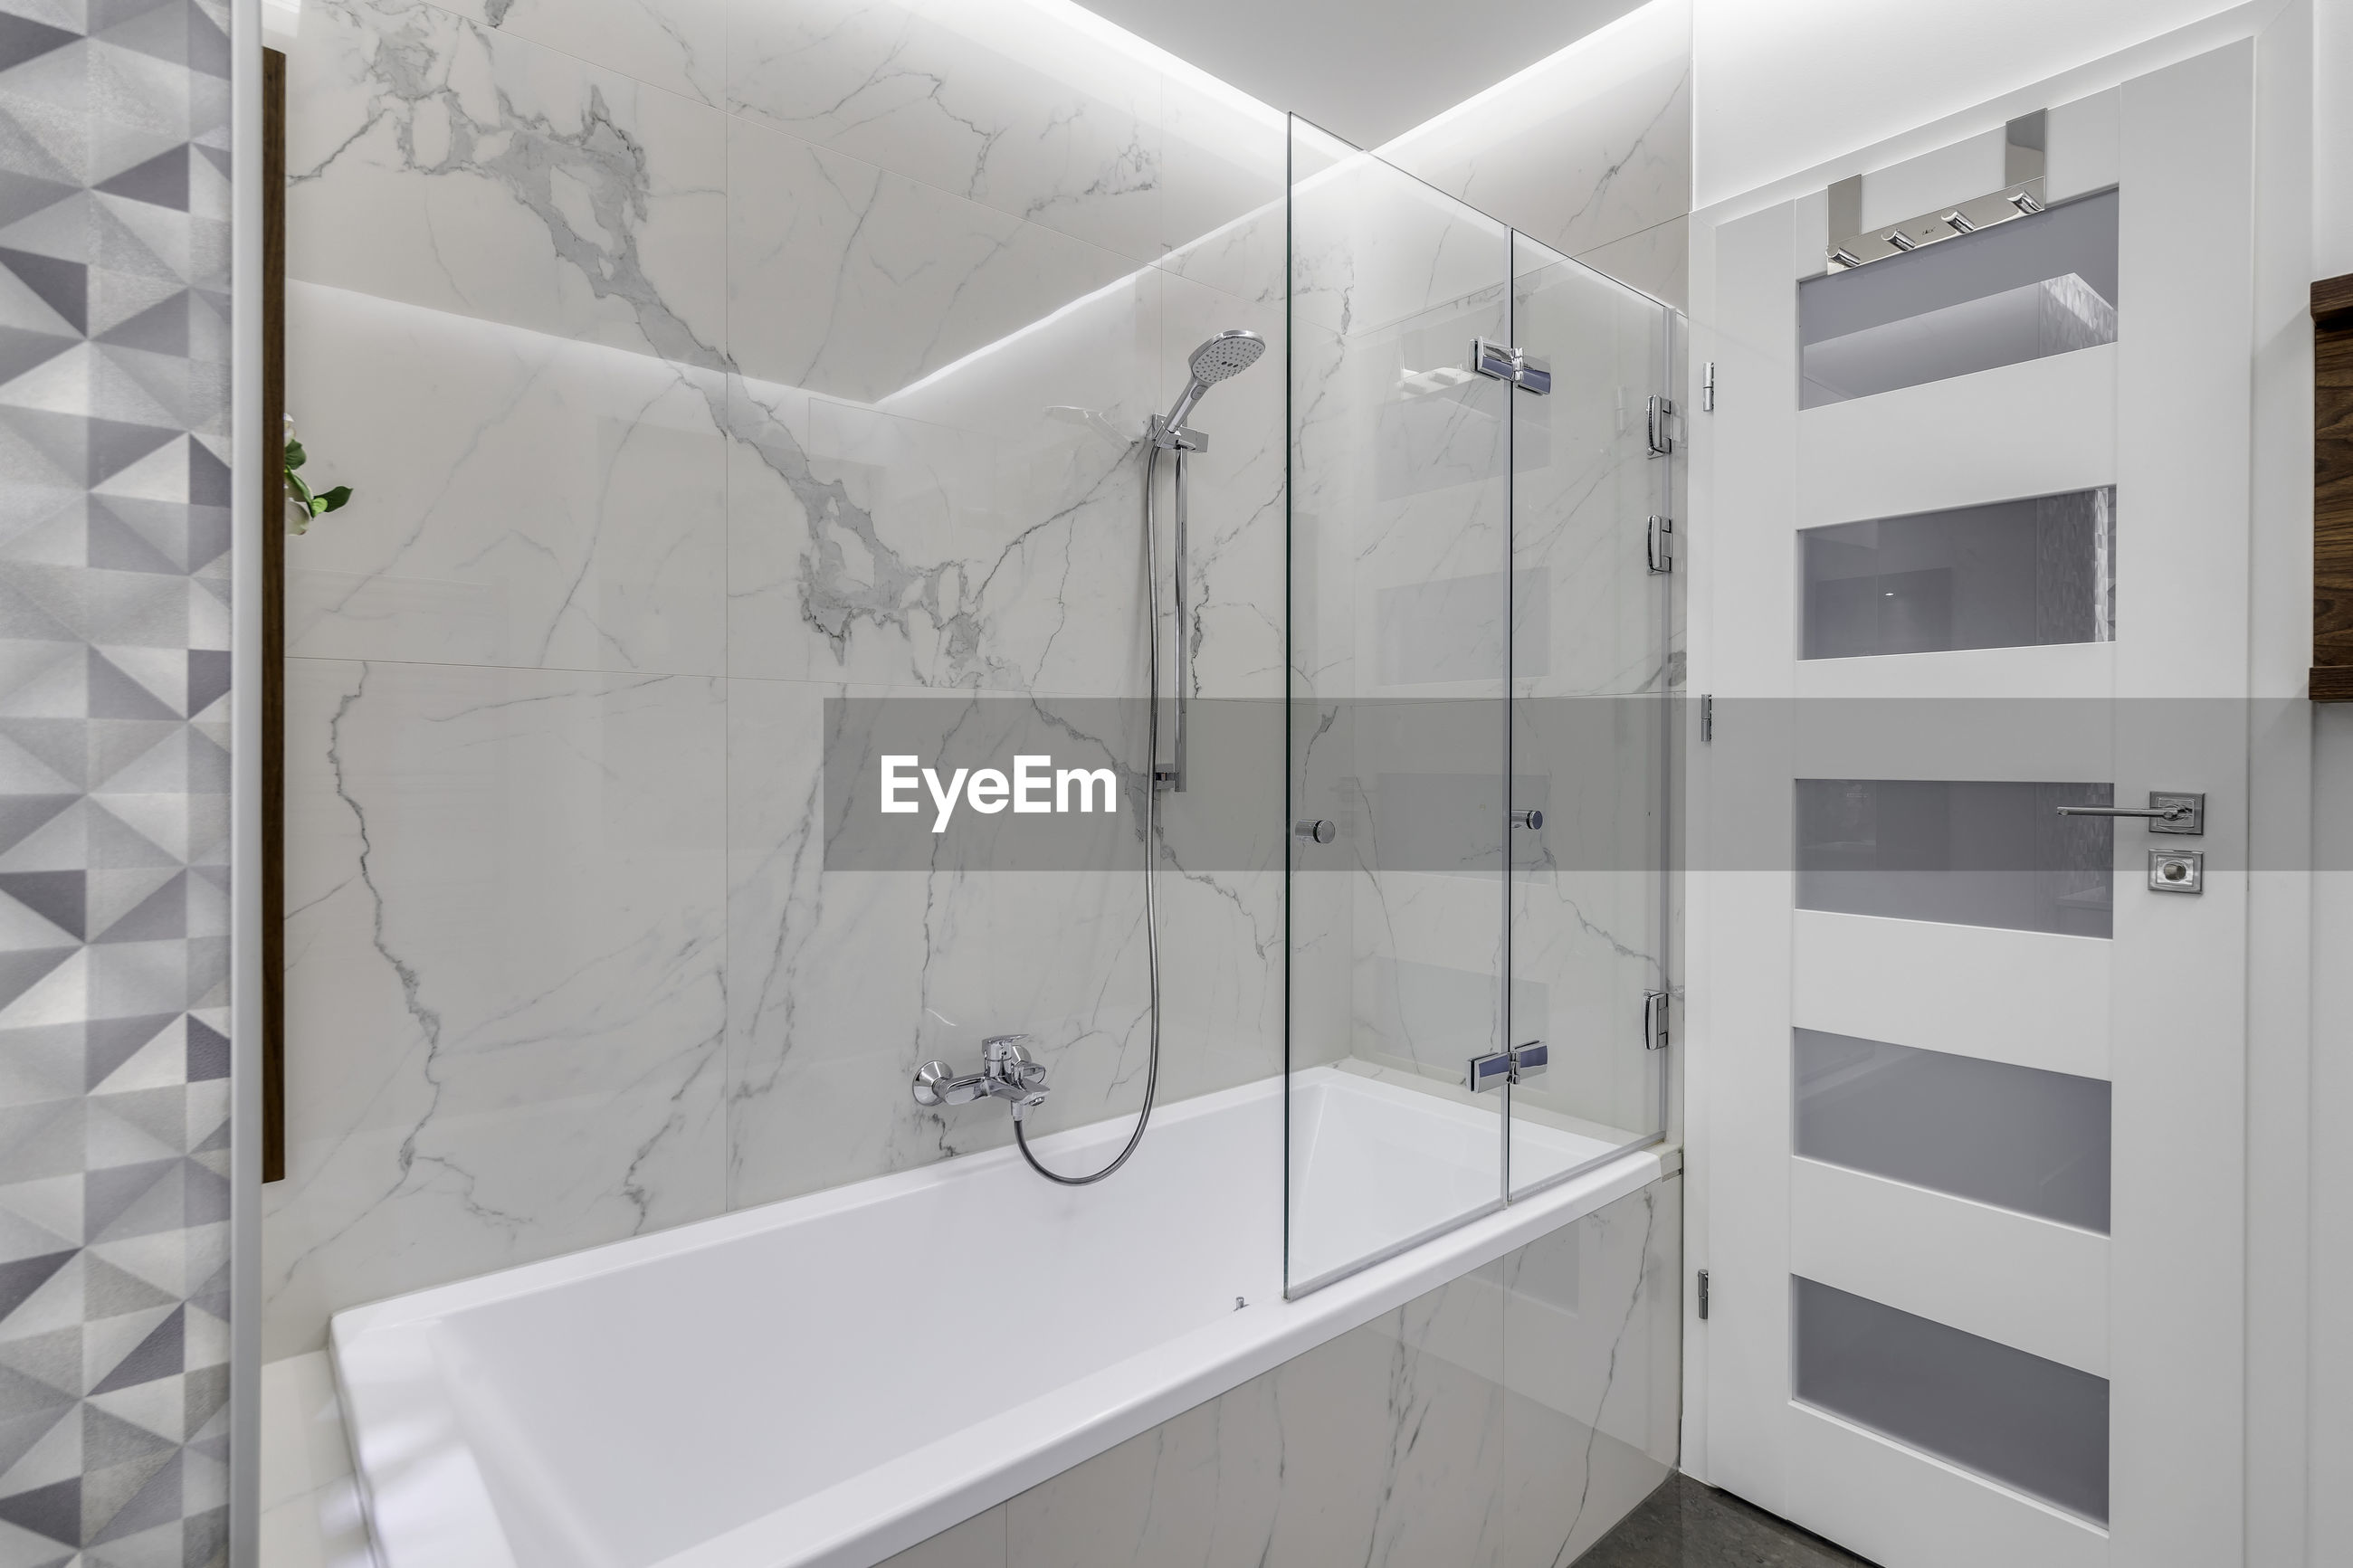 WHITE WALL OF BUILDING WITH BATHROOM